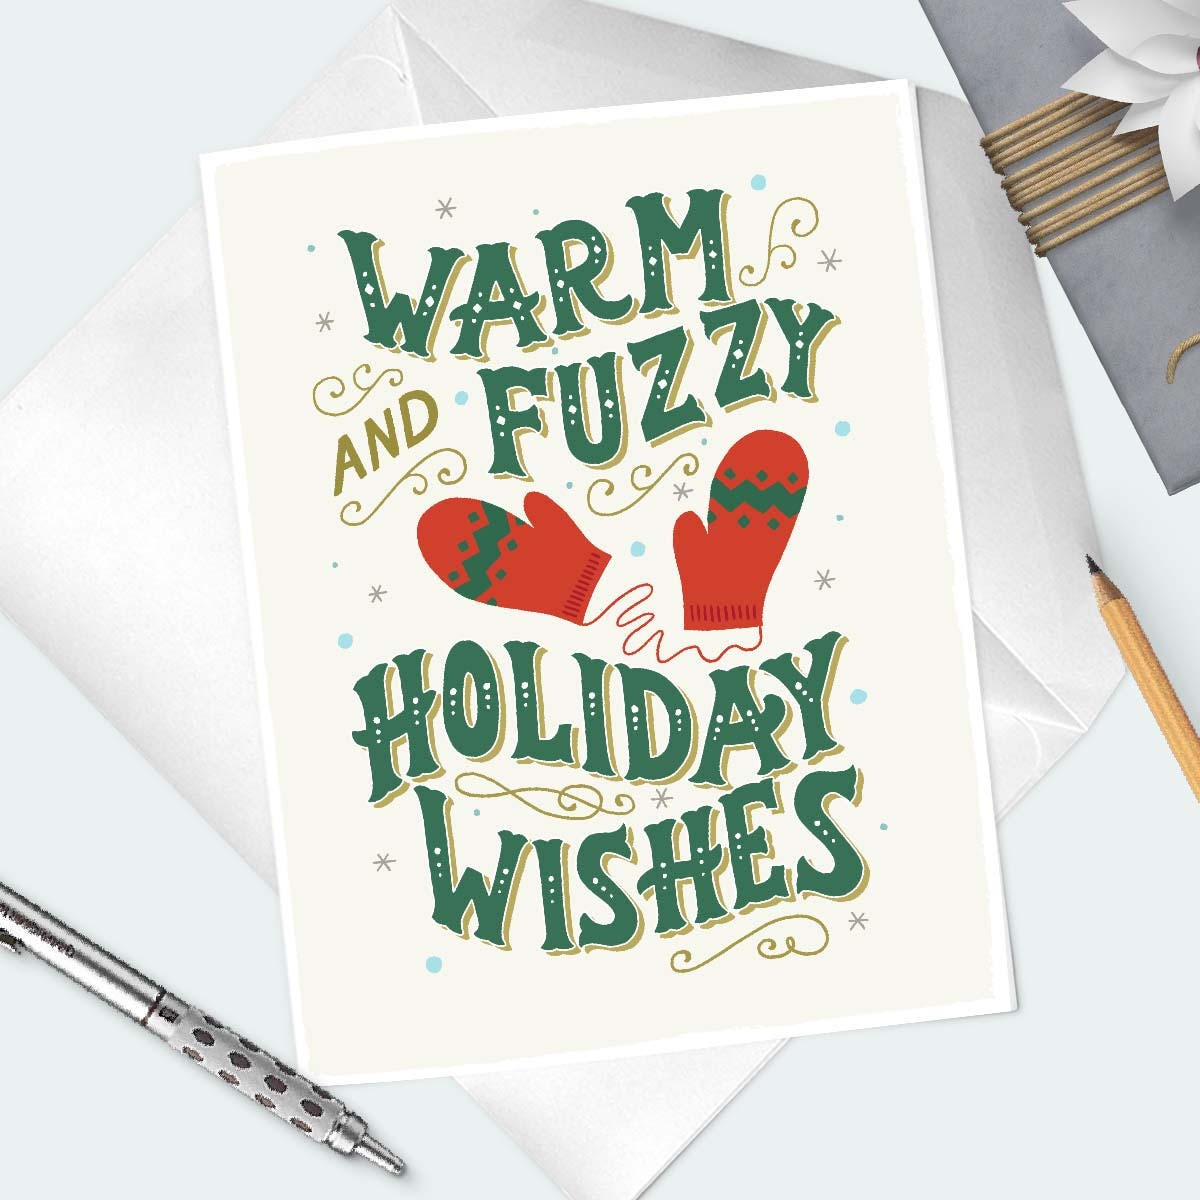 Holiday Wishes Card Nonspecific Winter Season Greetings Card